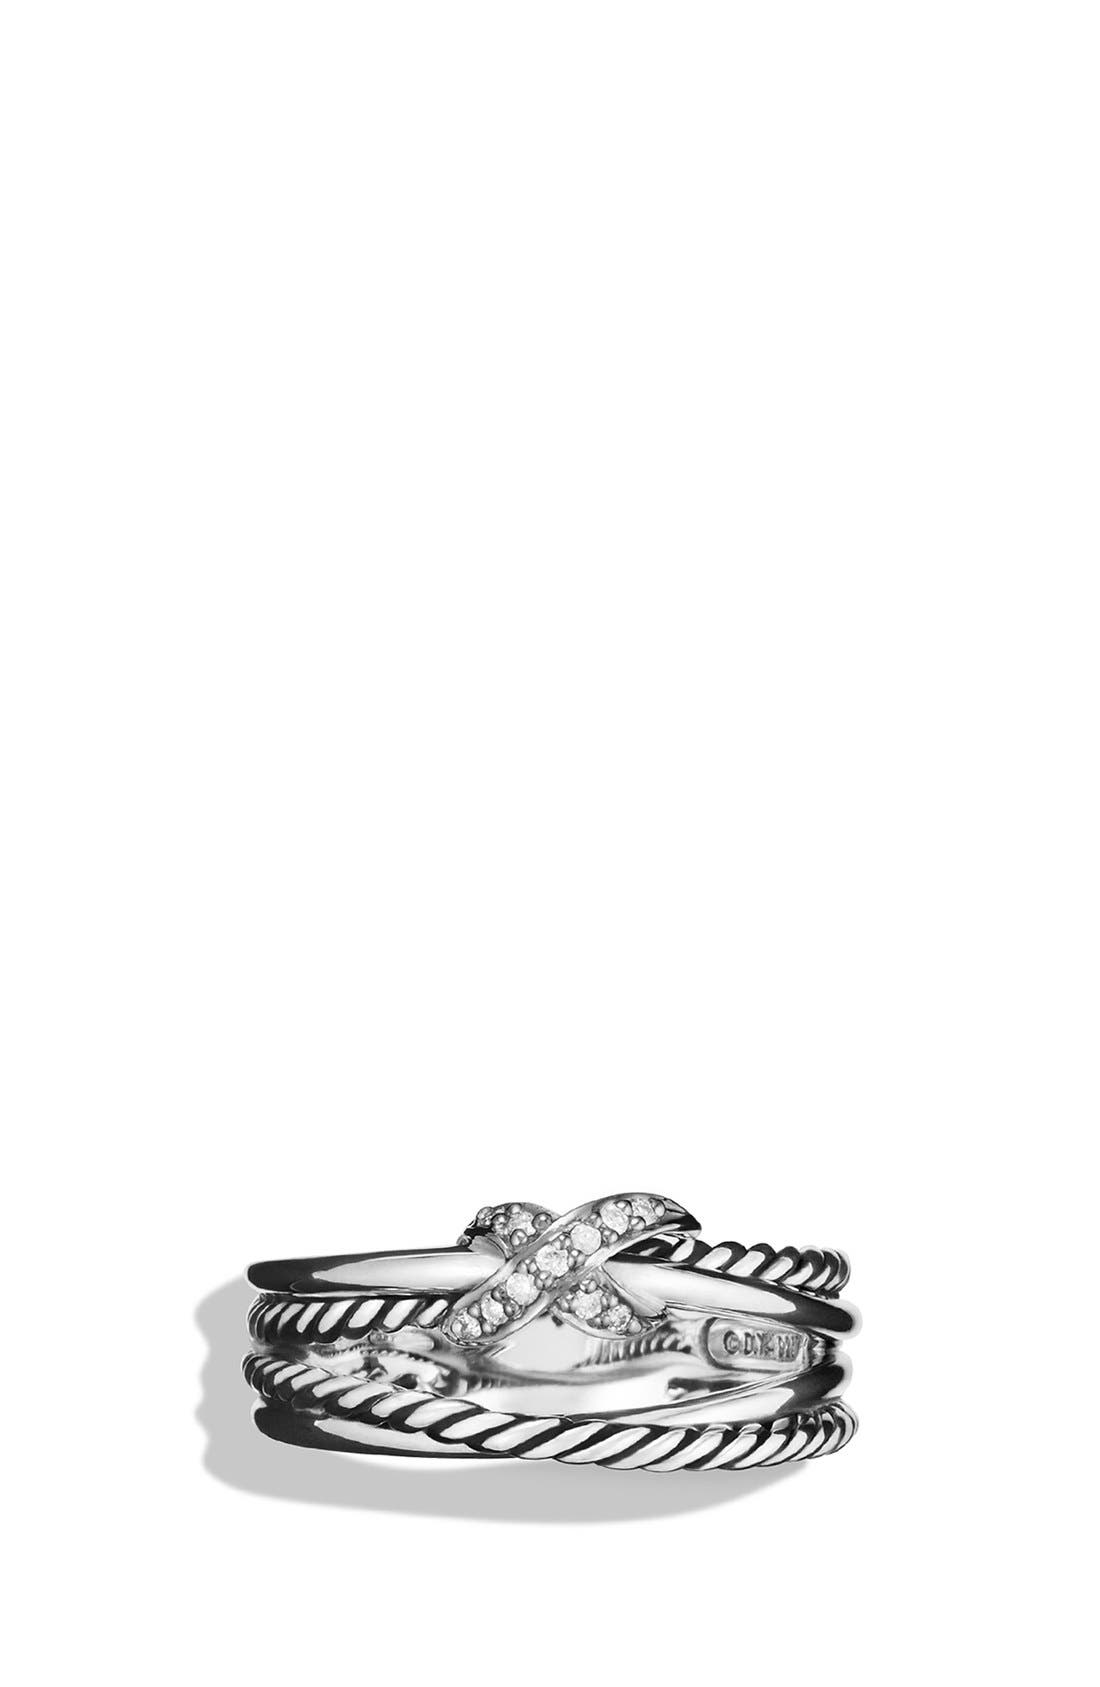 Alternate Image 3  - David Yurman 'X Crossover' Ring with Diamonds